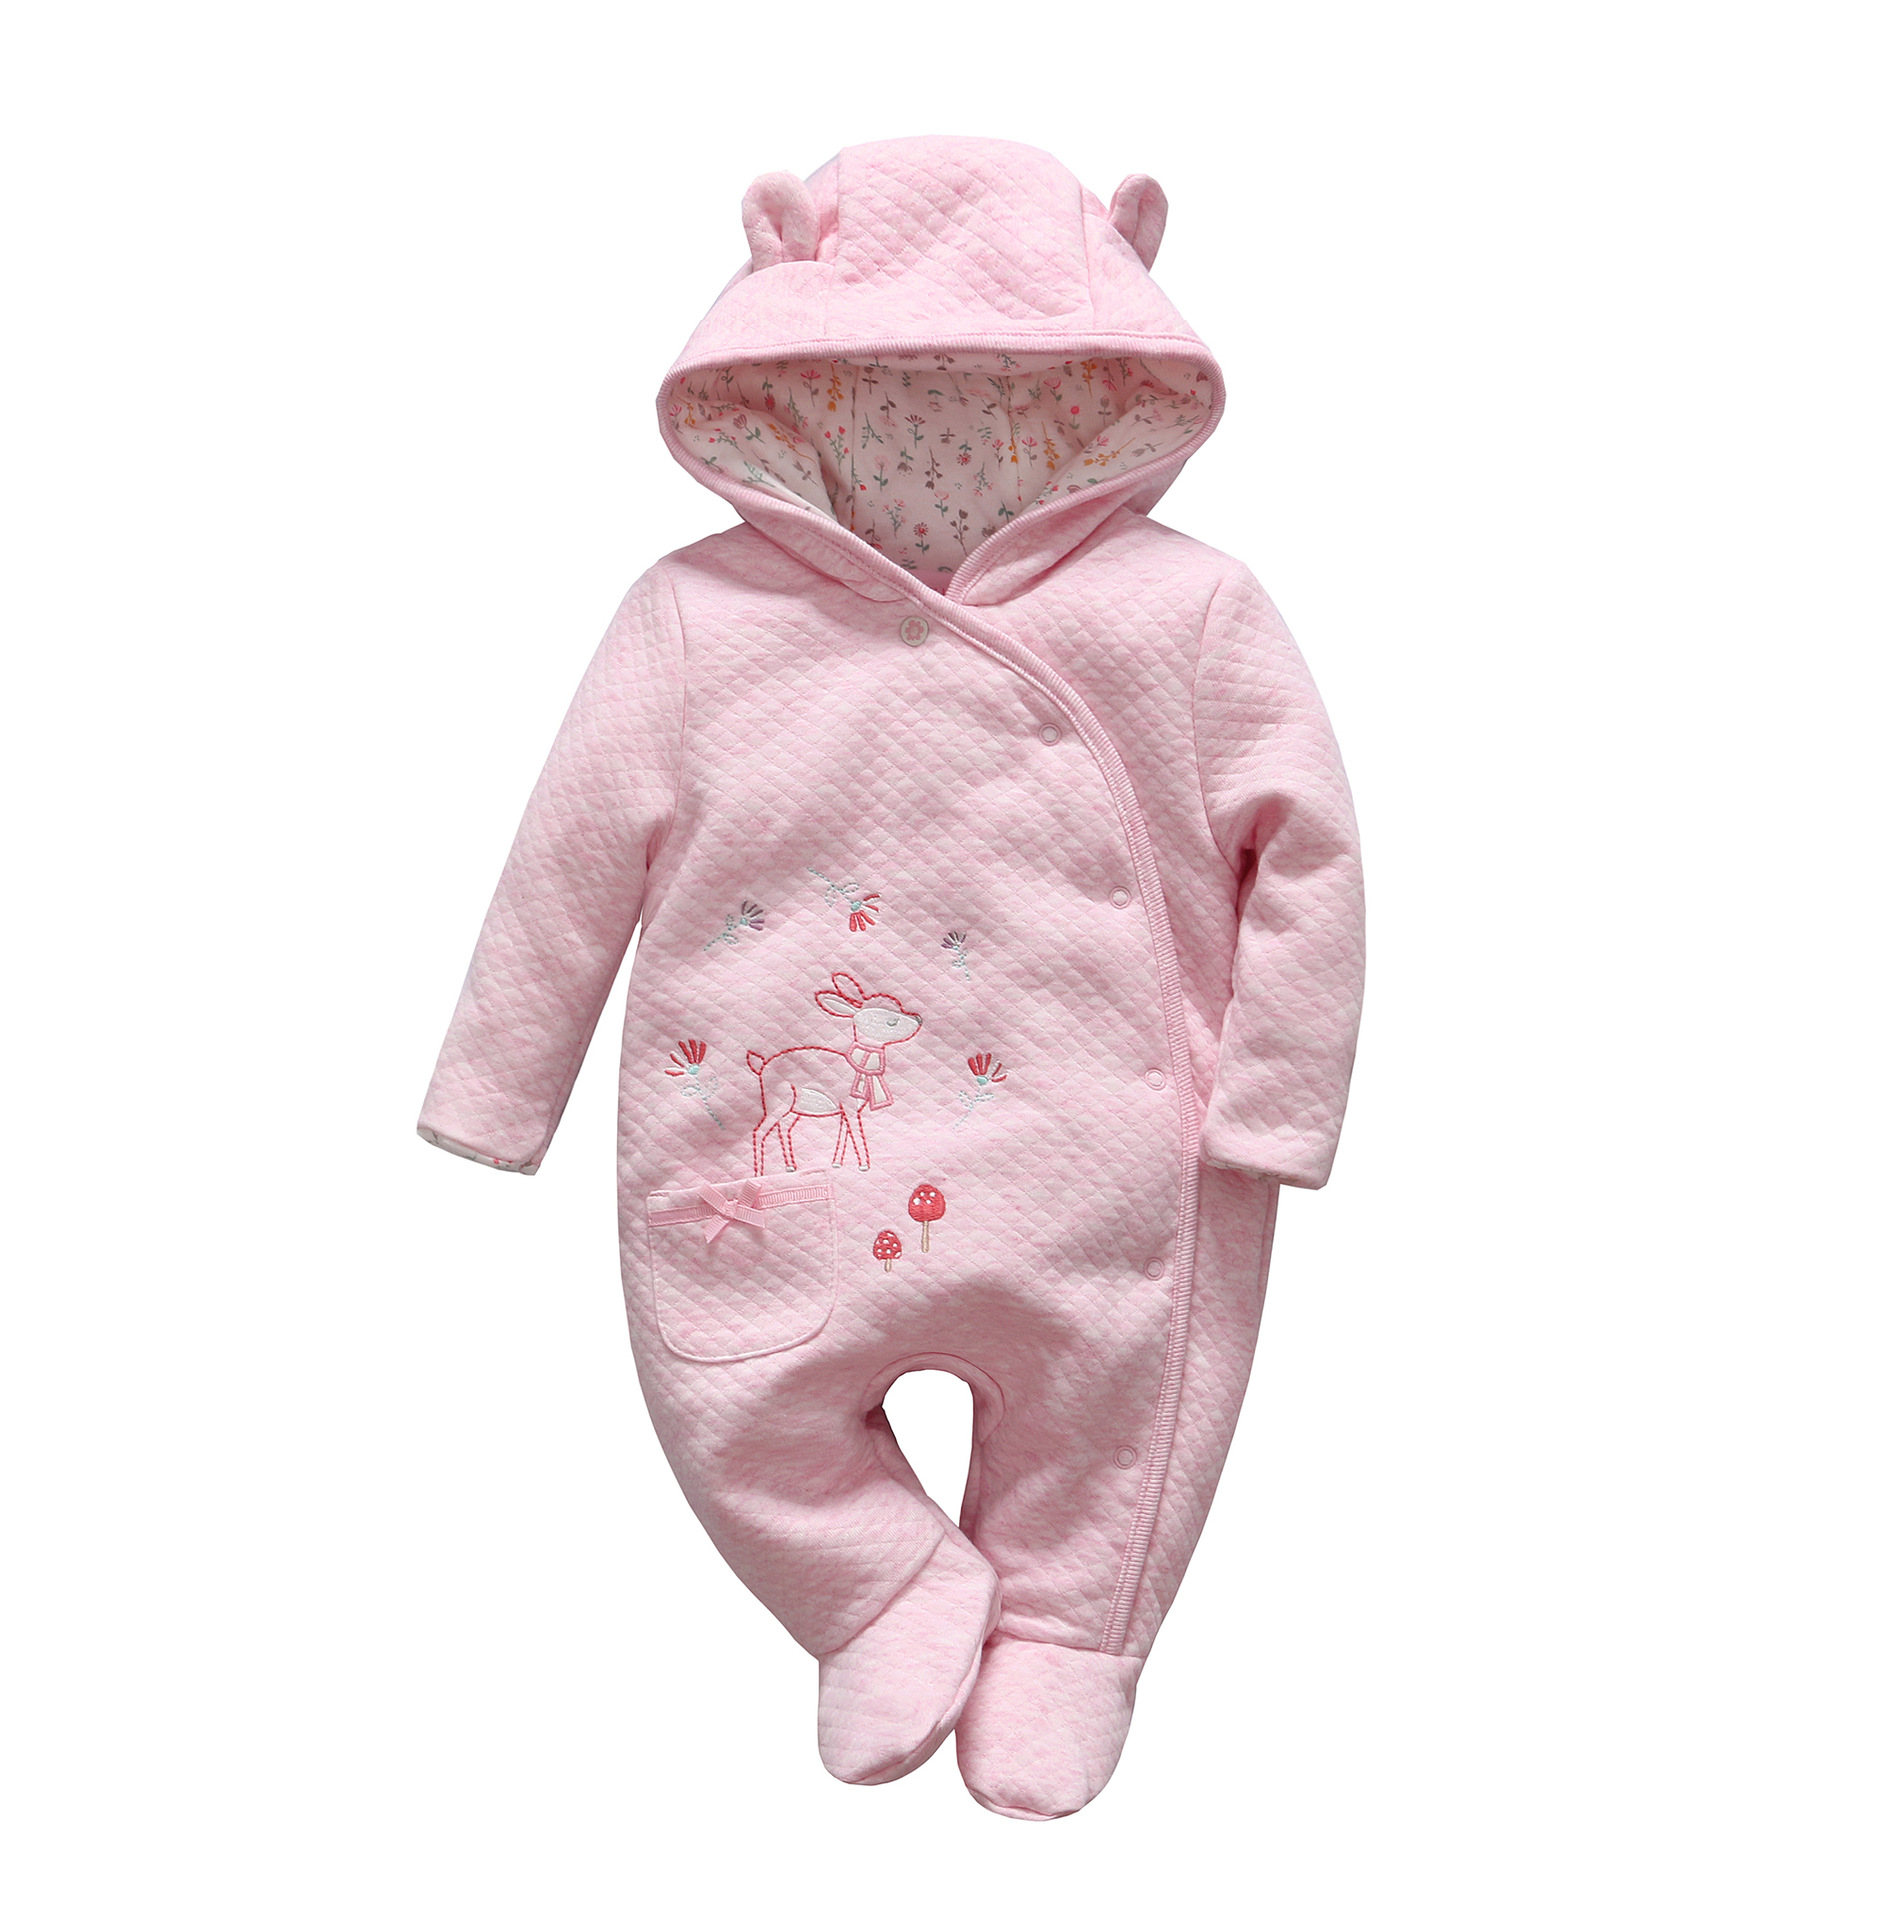 2018 Baby Clothes Newborn Baby Girl Winter Clothing Baby Thickening Cotton Animal Rompers Newborn Floral Hooded Jumpsuit<br>